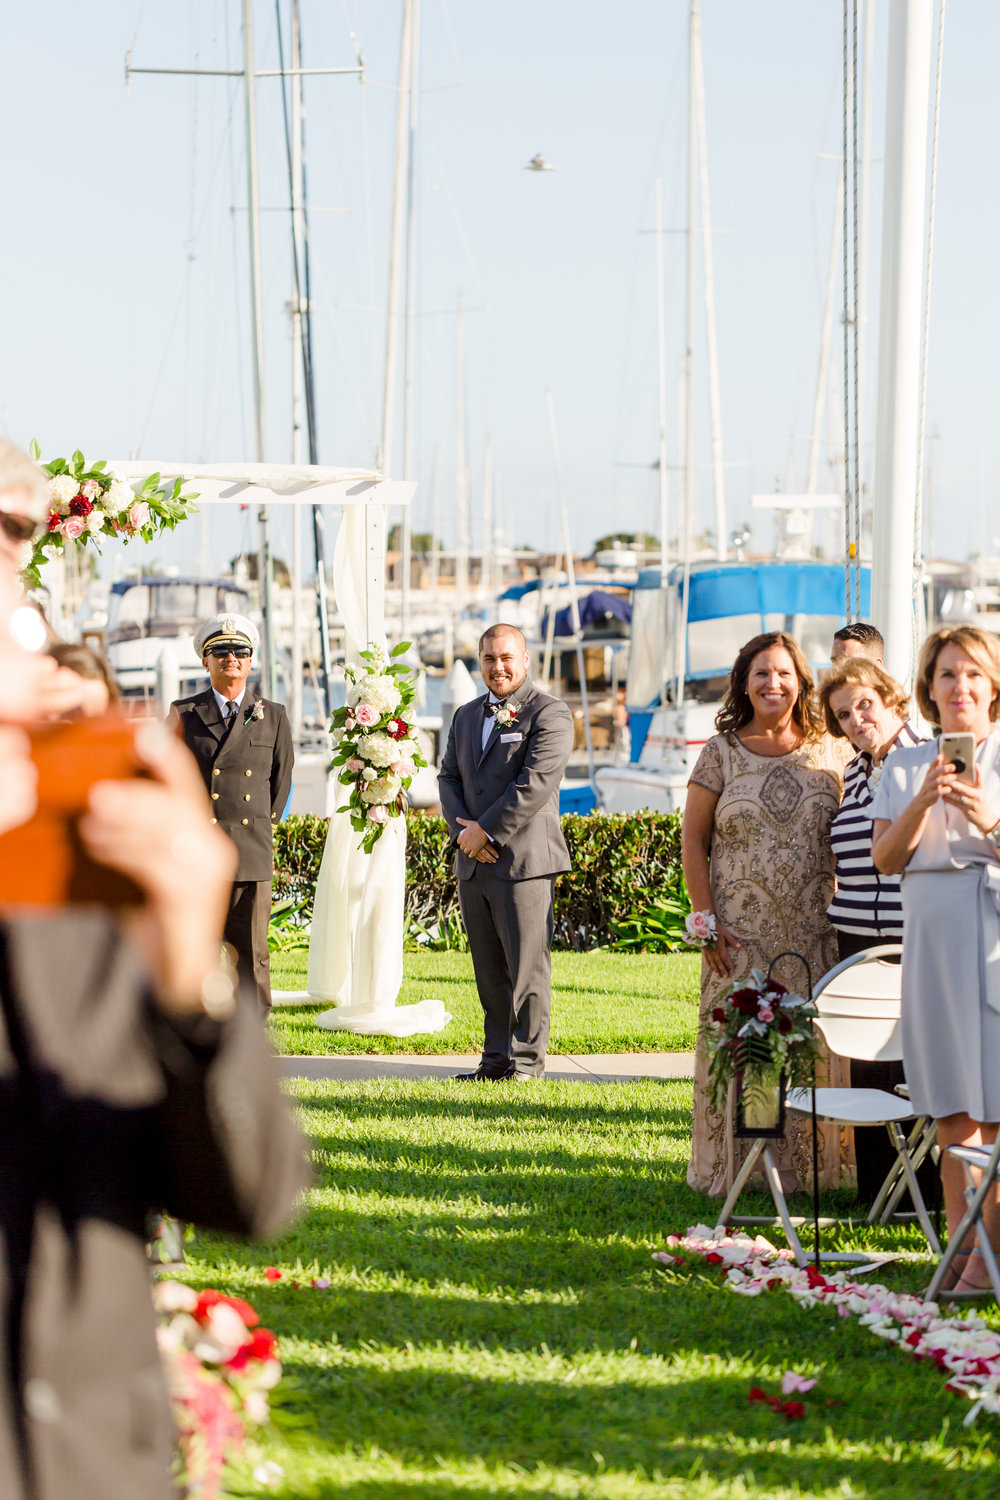 Becca_Mark_Southwestern_Yacht_Club_Wedding_294.jpg